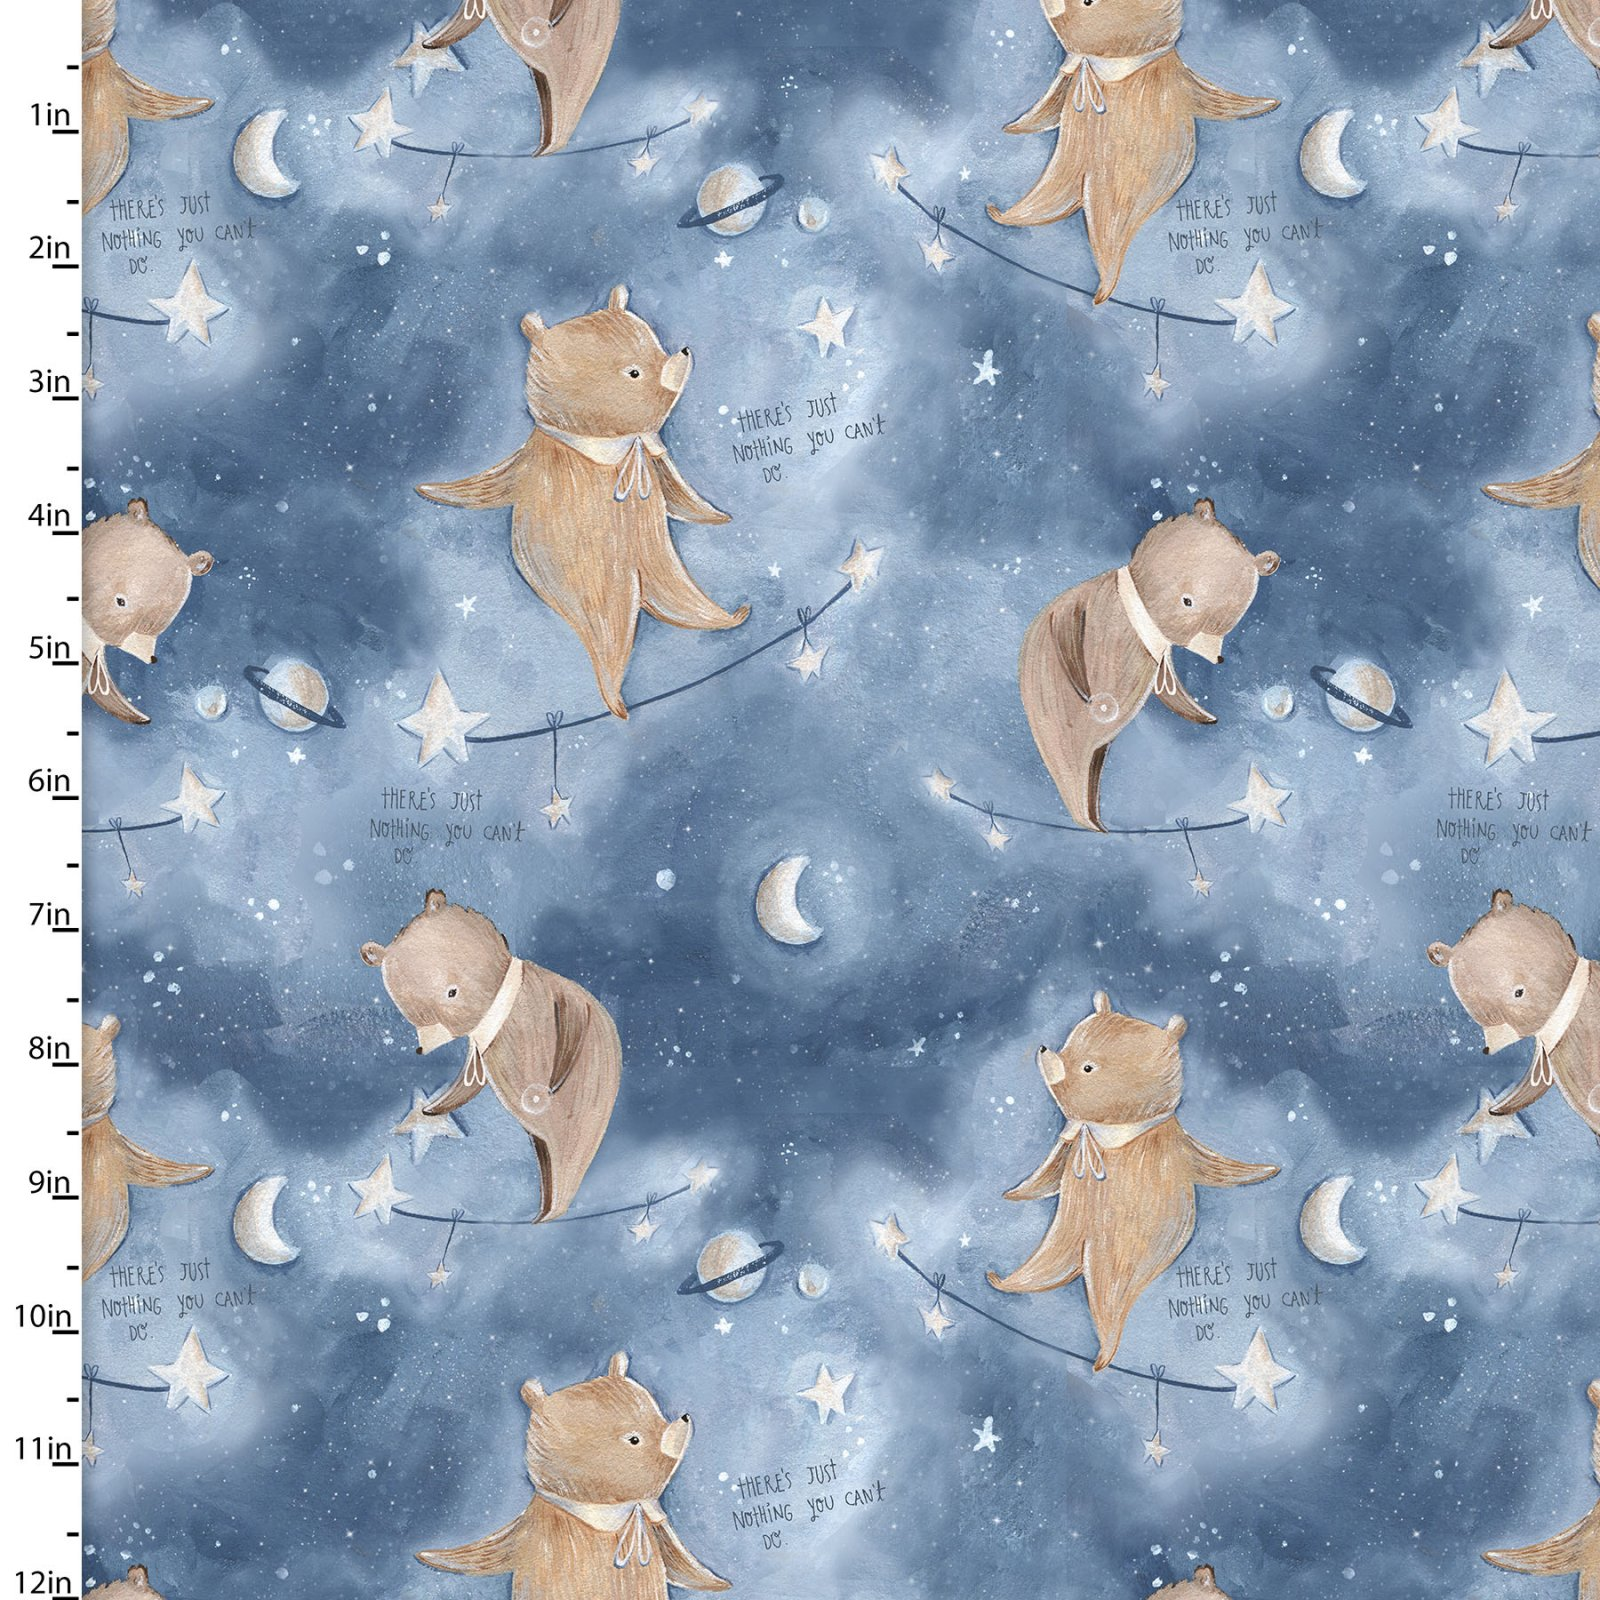 3 Wishes Fabric for Independent Shops Adventures In The Sky by Bianca Pozzi